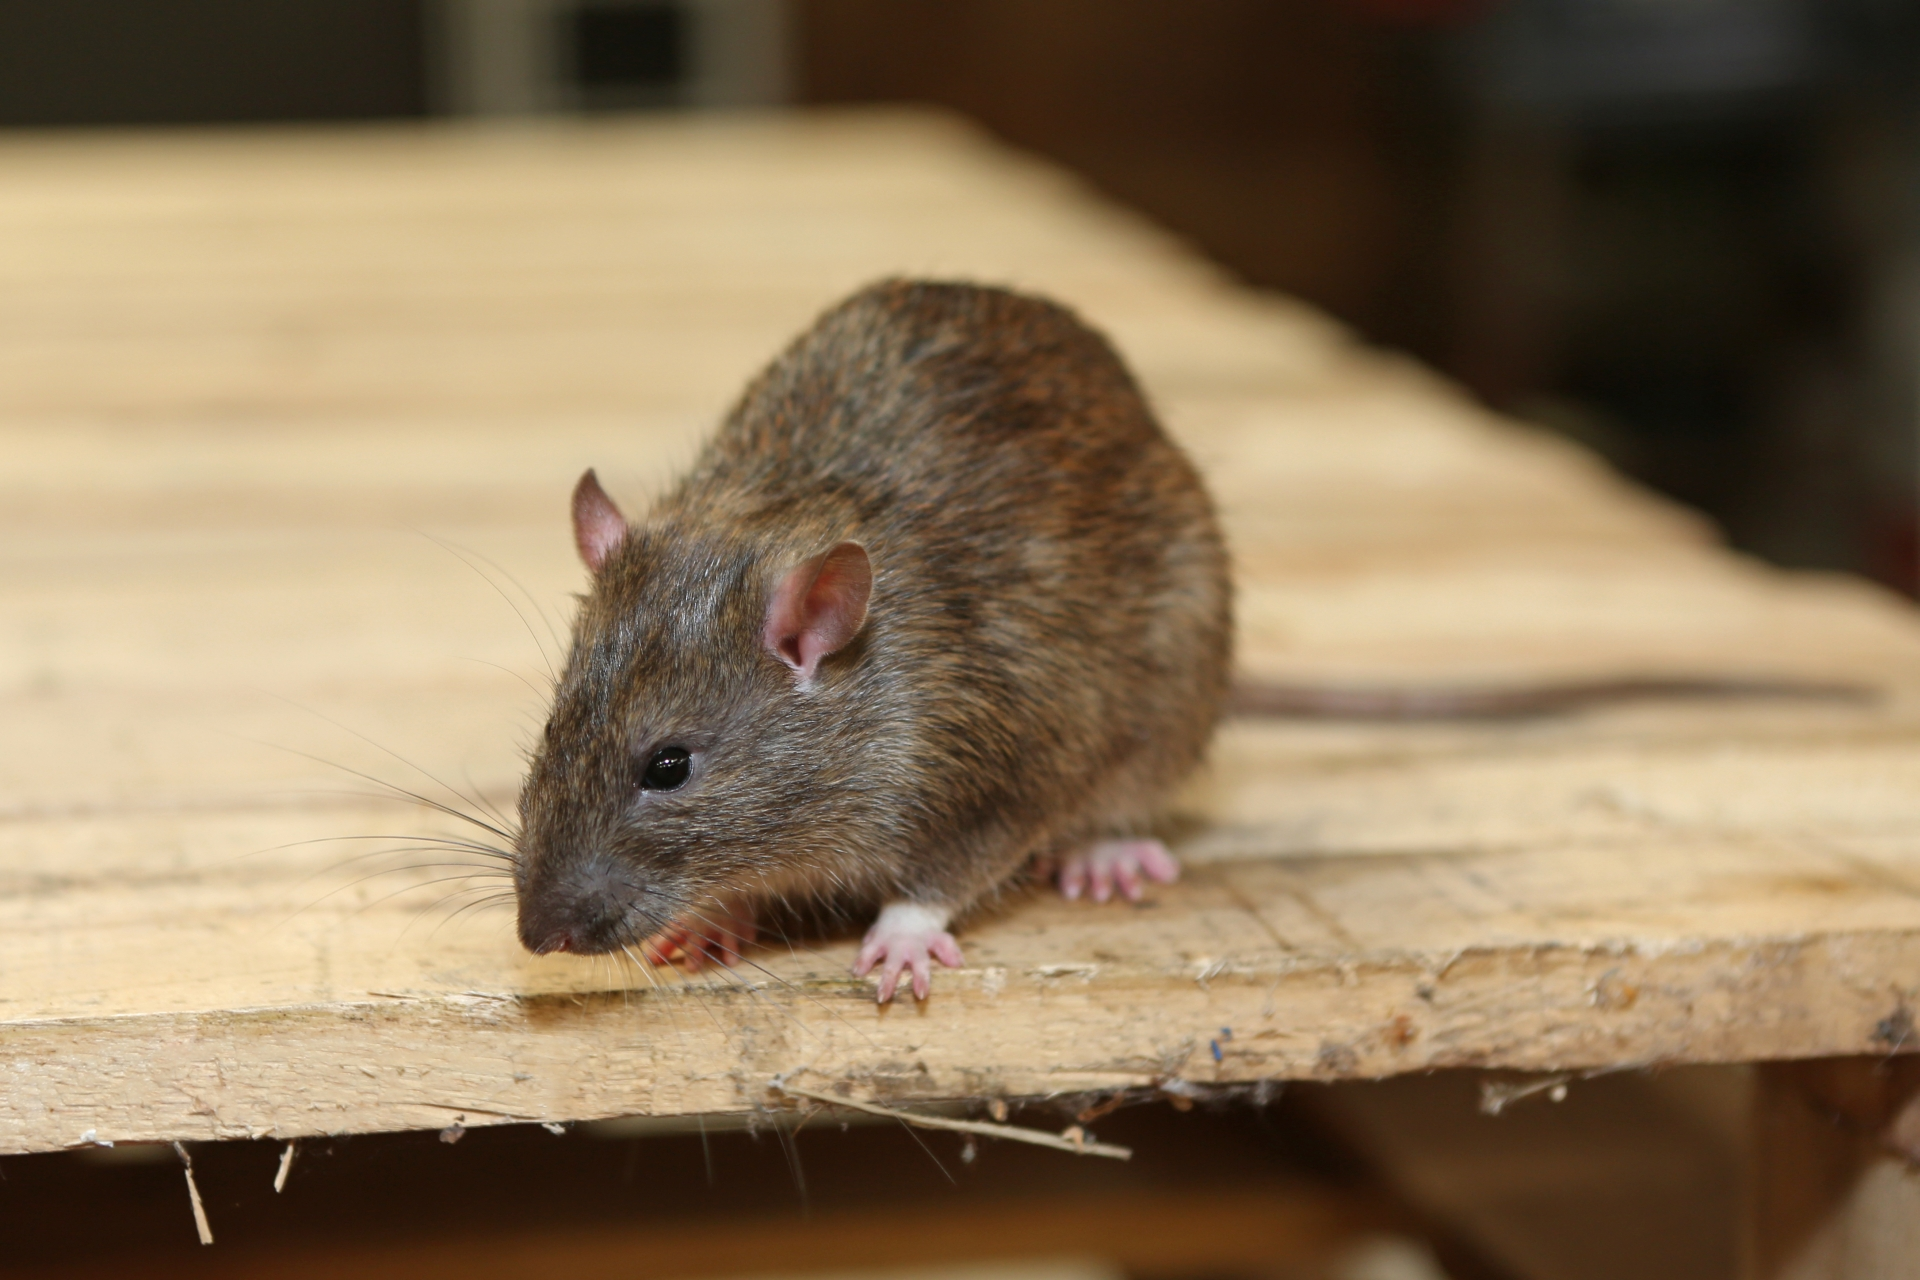 Rat Control, Pest Control in Swiss Cottage, NW3. Call Now 020 8166 9746